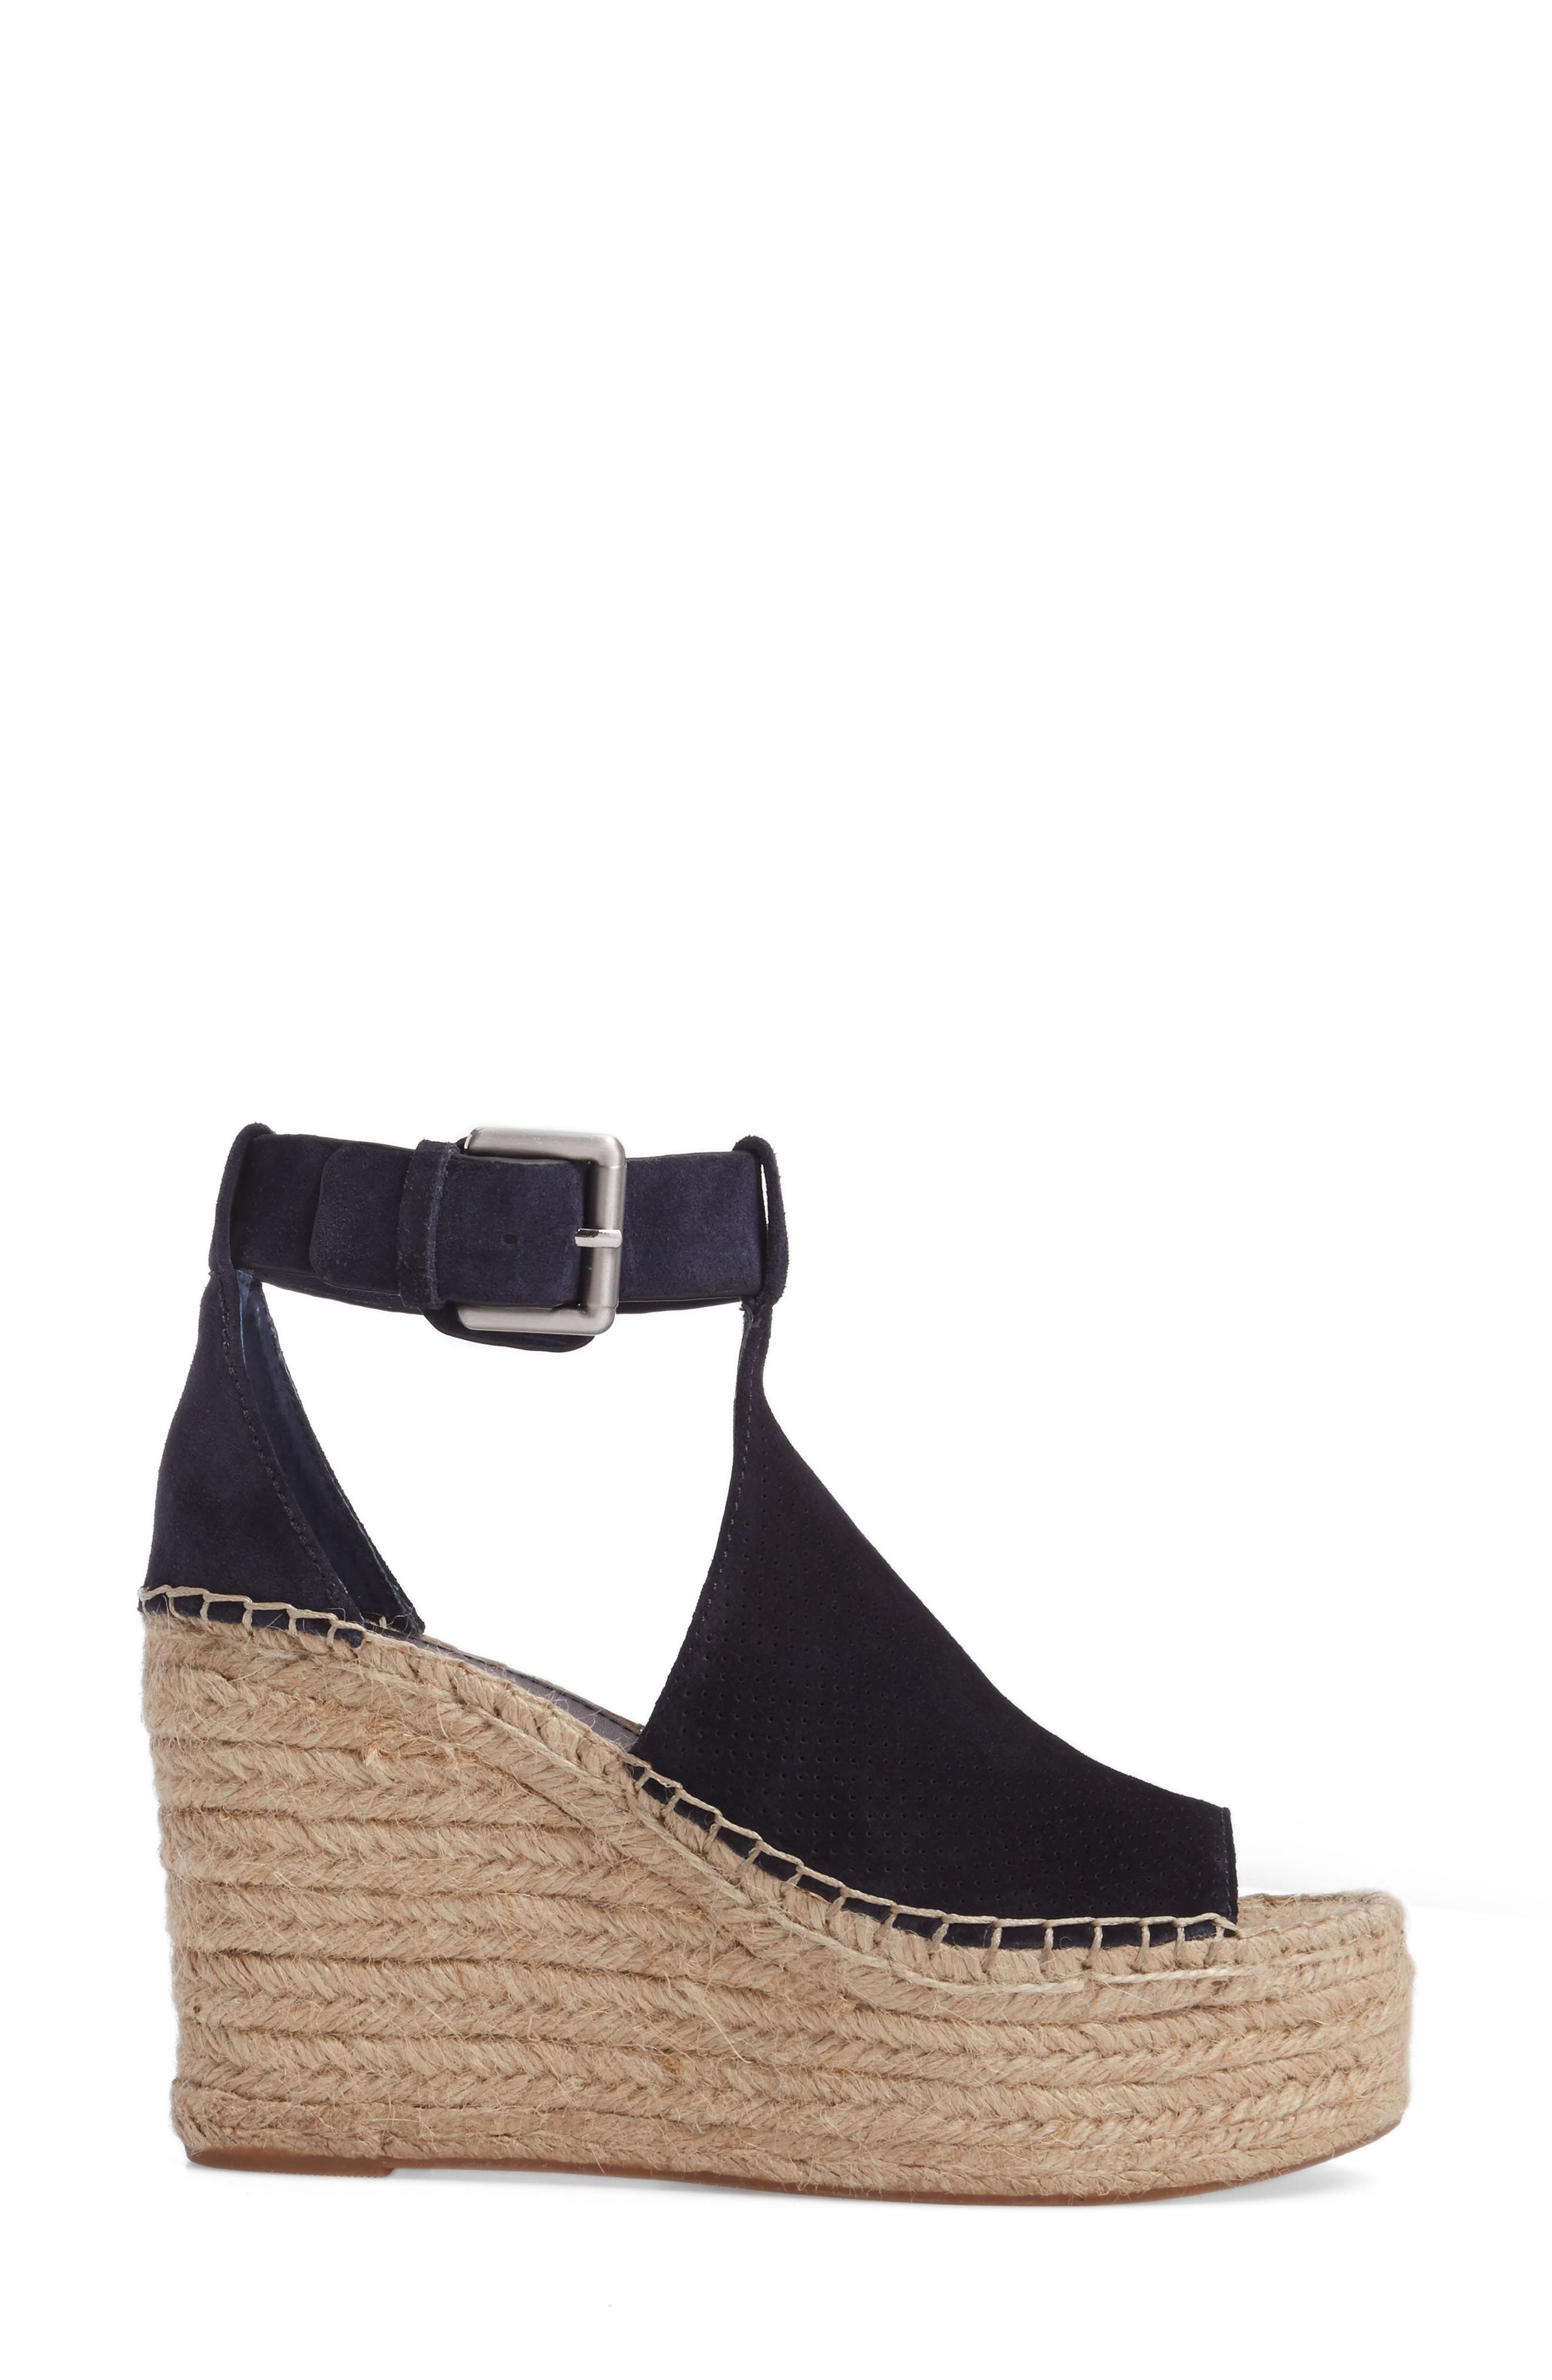 MARC FISHER LTD, Annie Perforated Espadrille Platform Wedge, Alternate thumbnail 3, color, 435